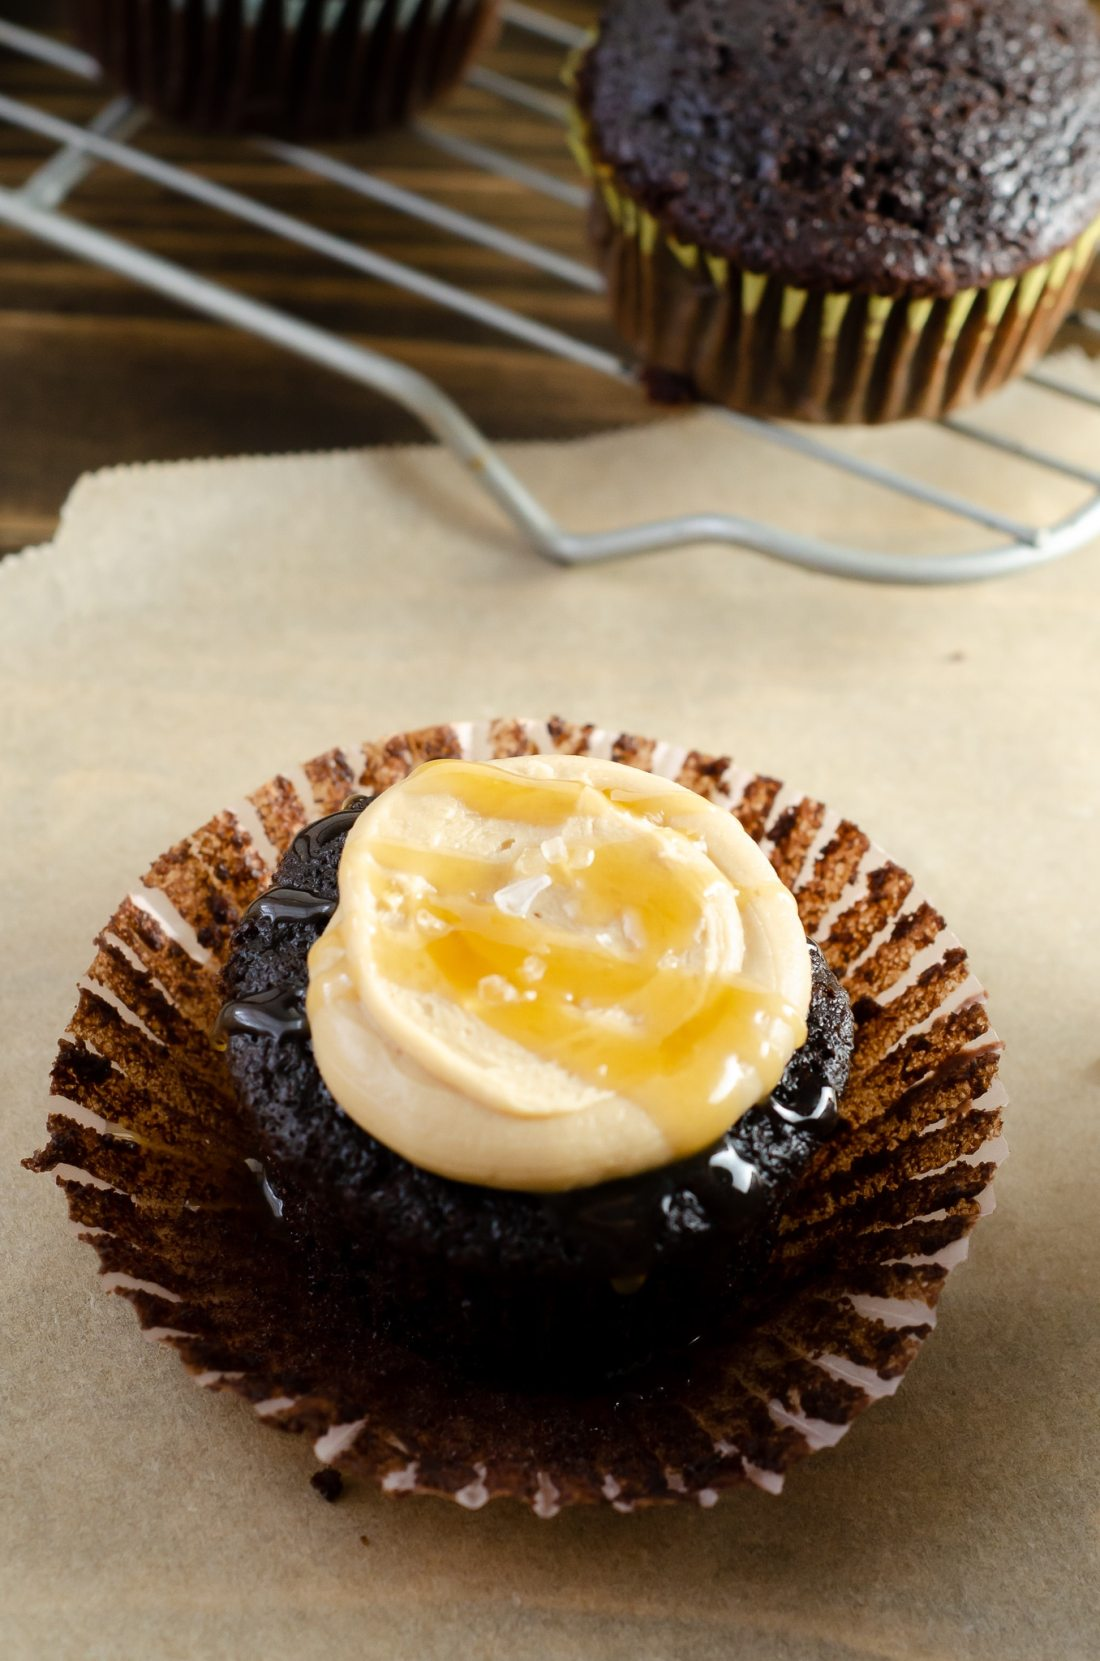 Super Moist Chocolate Cupcakes From Scratch Salted Caramel Frosting Drizilled with caramel and salt. Celebrate any occasion with these decadent Super Moist Chocolate Cupcakes From Scratch with Salted Caramel Frosting and Caramel Filled Center. This homemade recipe is so easy to create, the kids can join in.